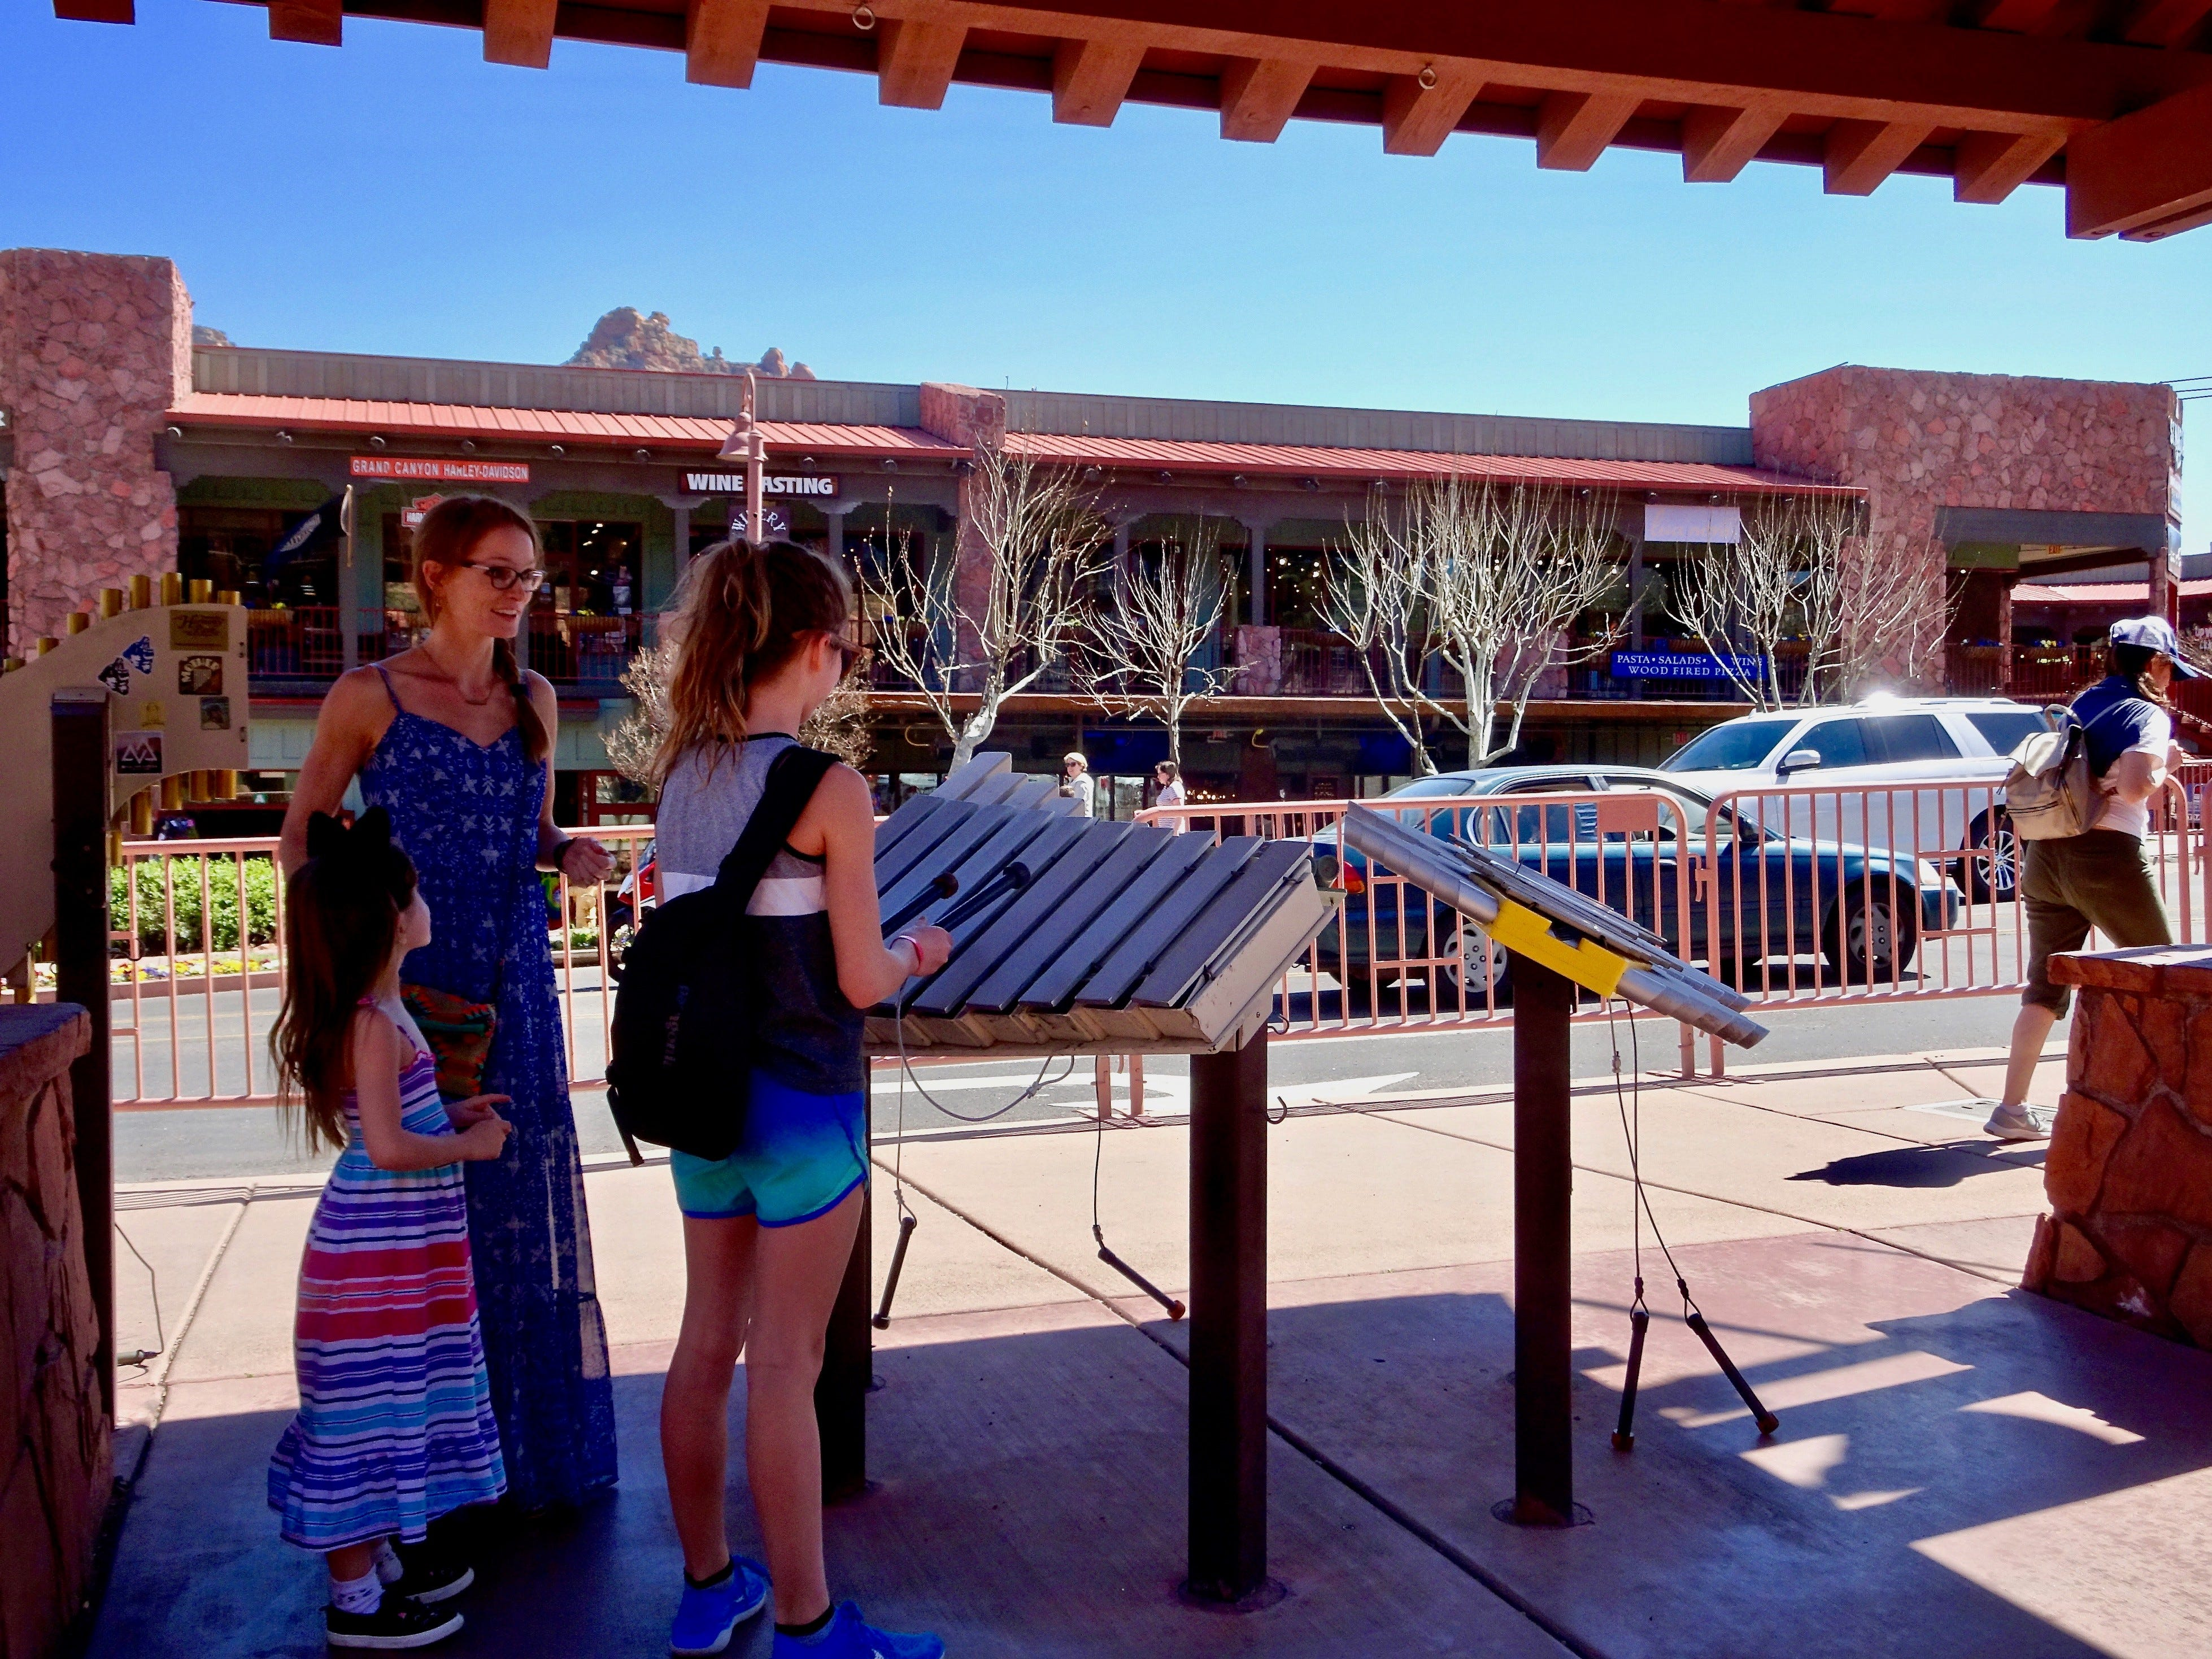 When browsing the shops of Uptown Sedona, look for public sculptures and musical instruments.